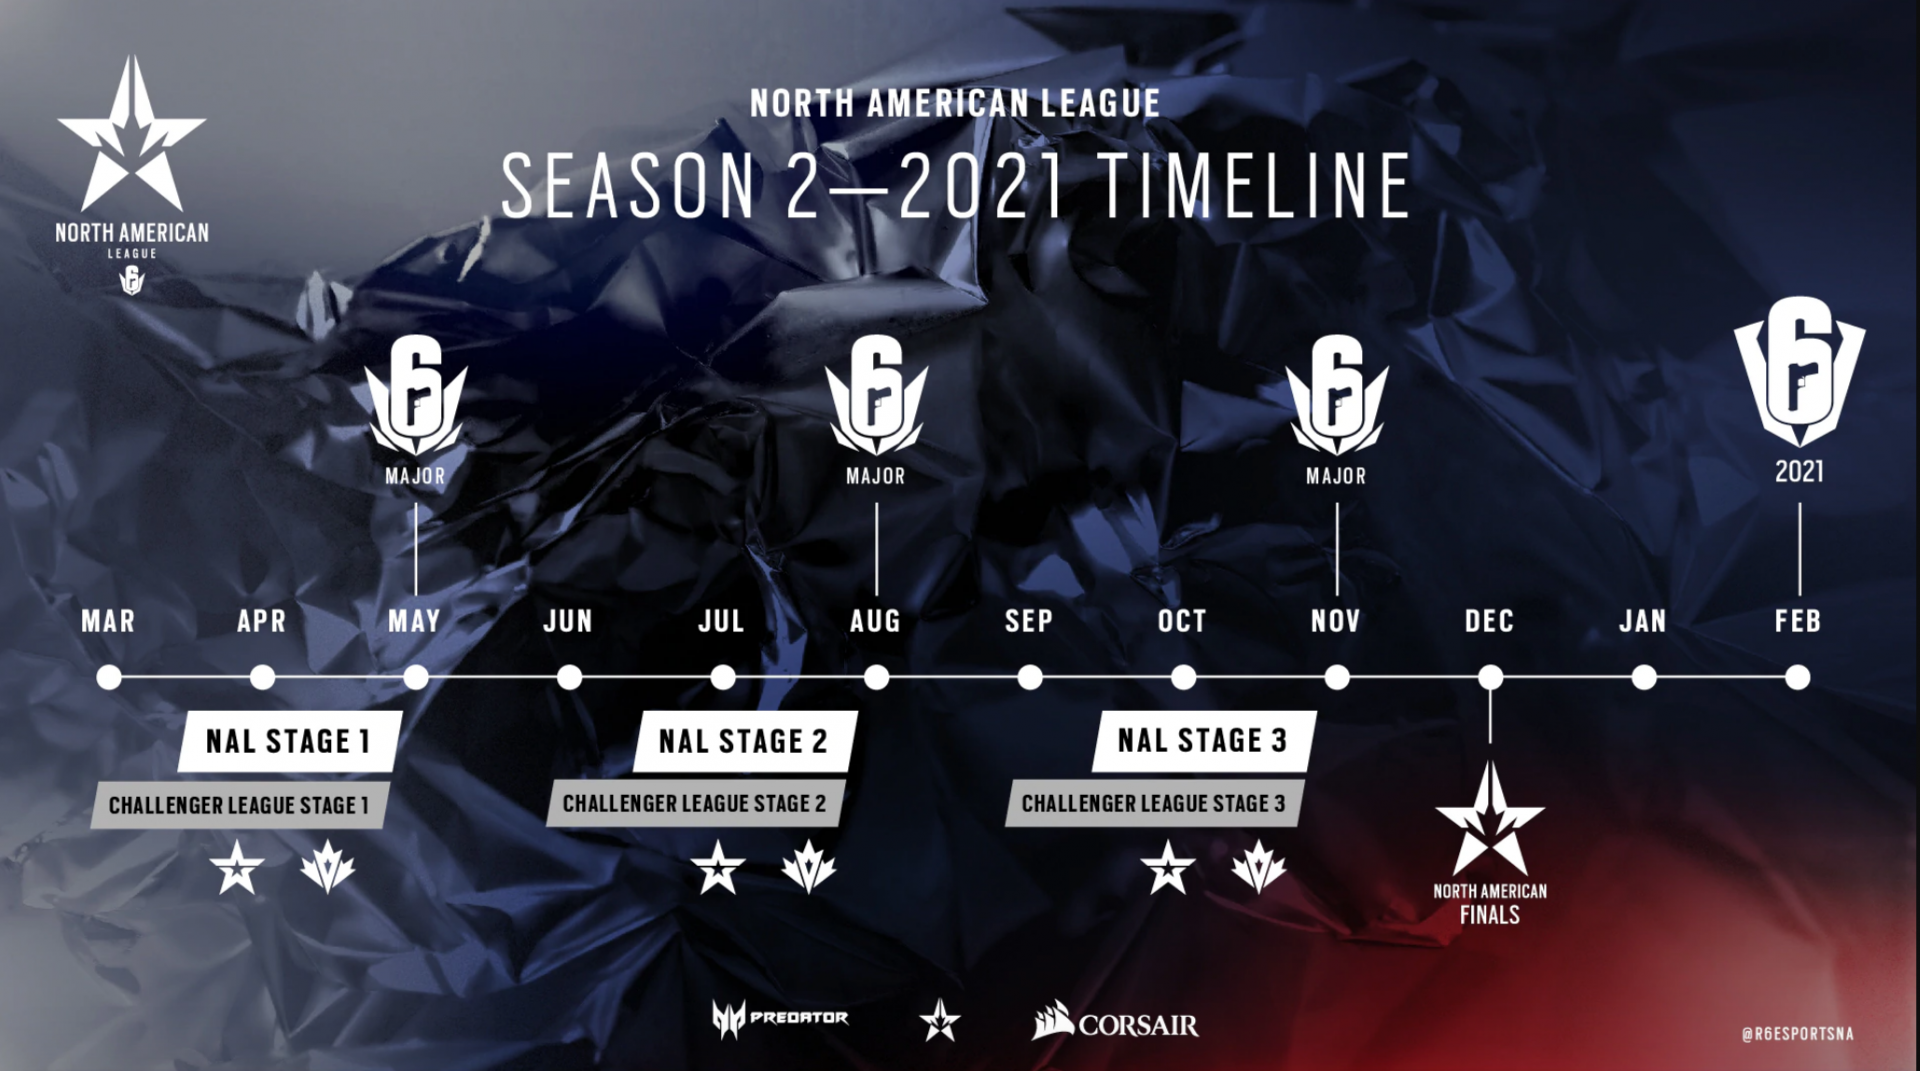 Rainbow Six North American League timeline